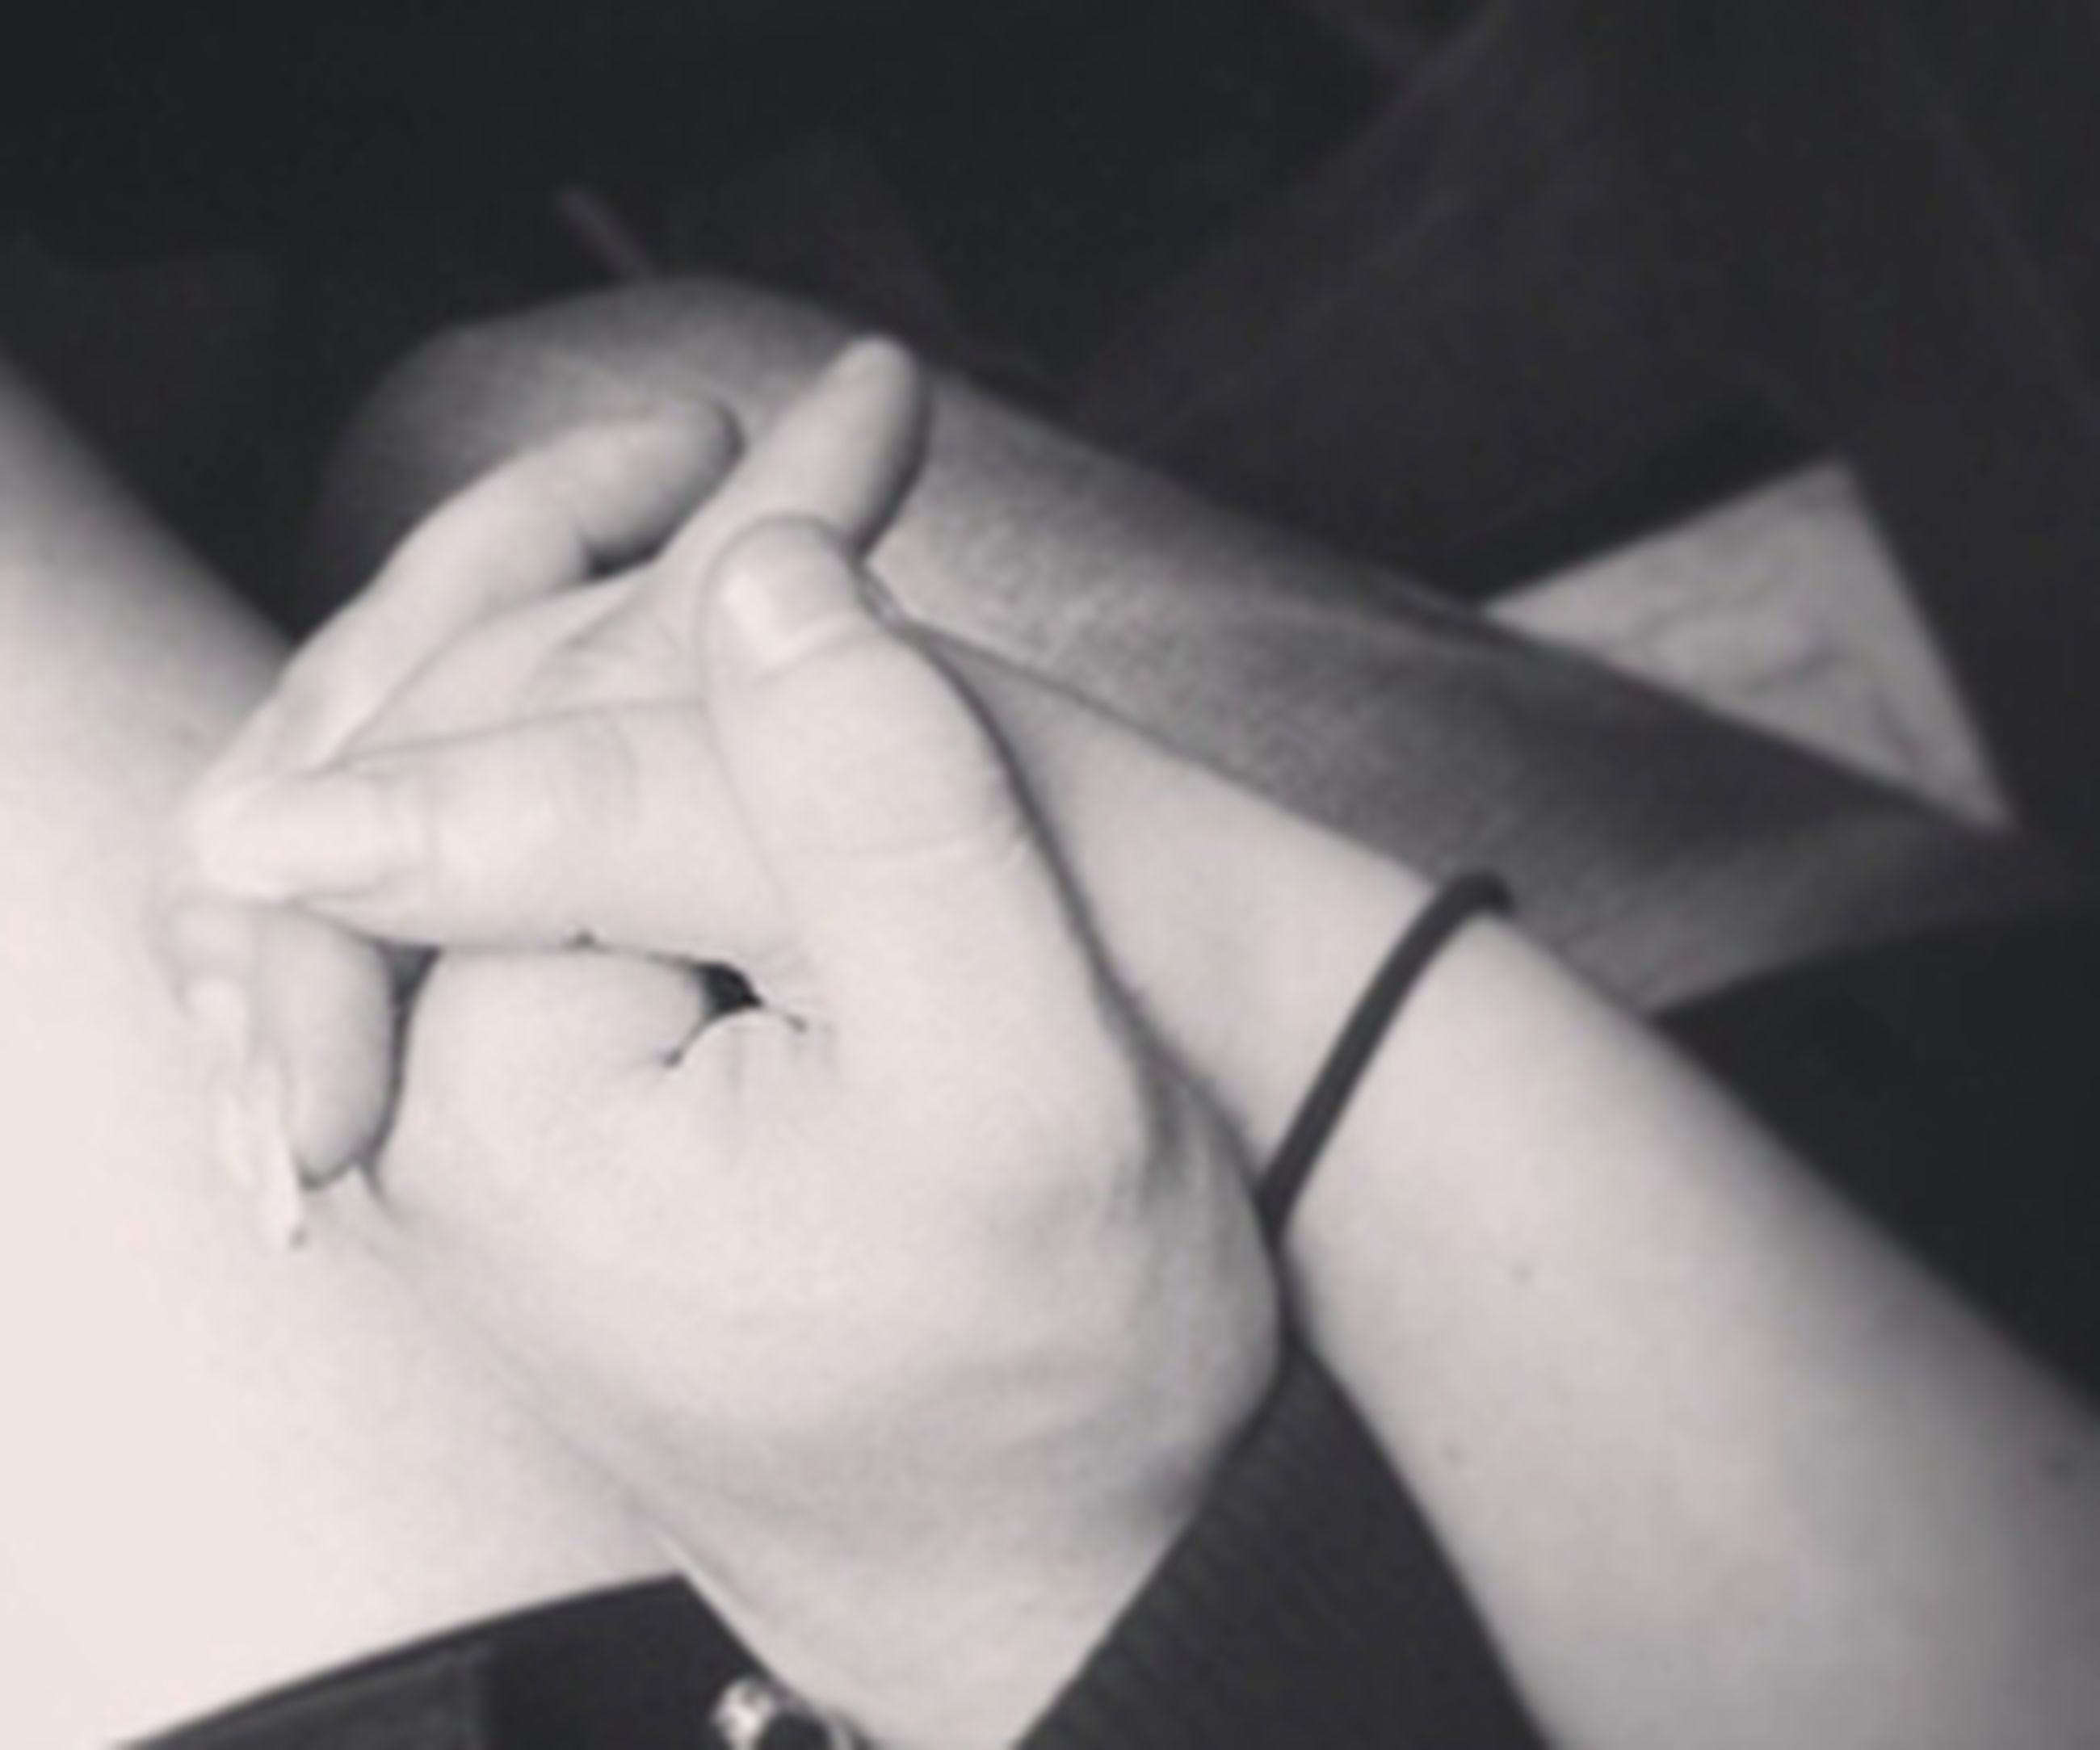 person, part of, lifestyles, close-up, indoors, cropped, human finger, holding, leisure activity, men, focus on foreground, bonding, love, togetherness, holding hands